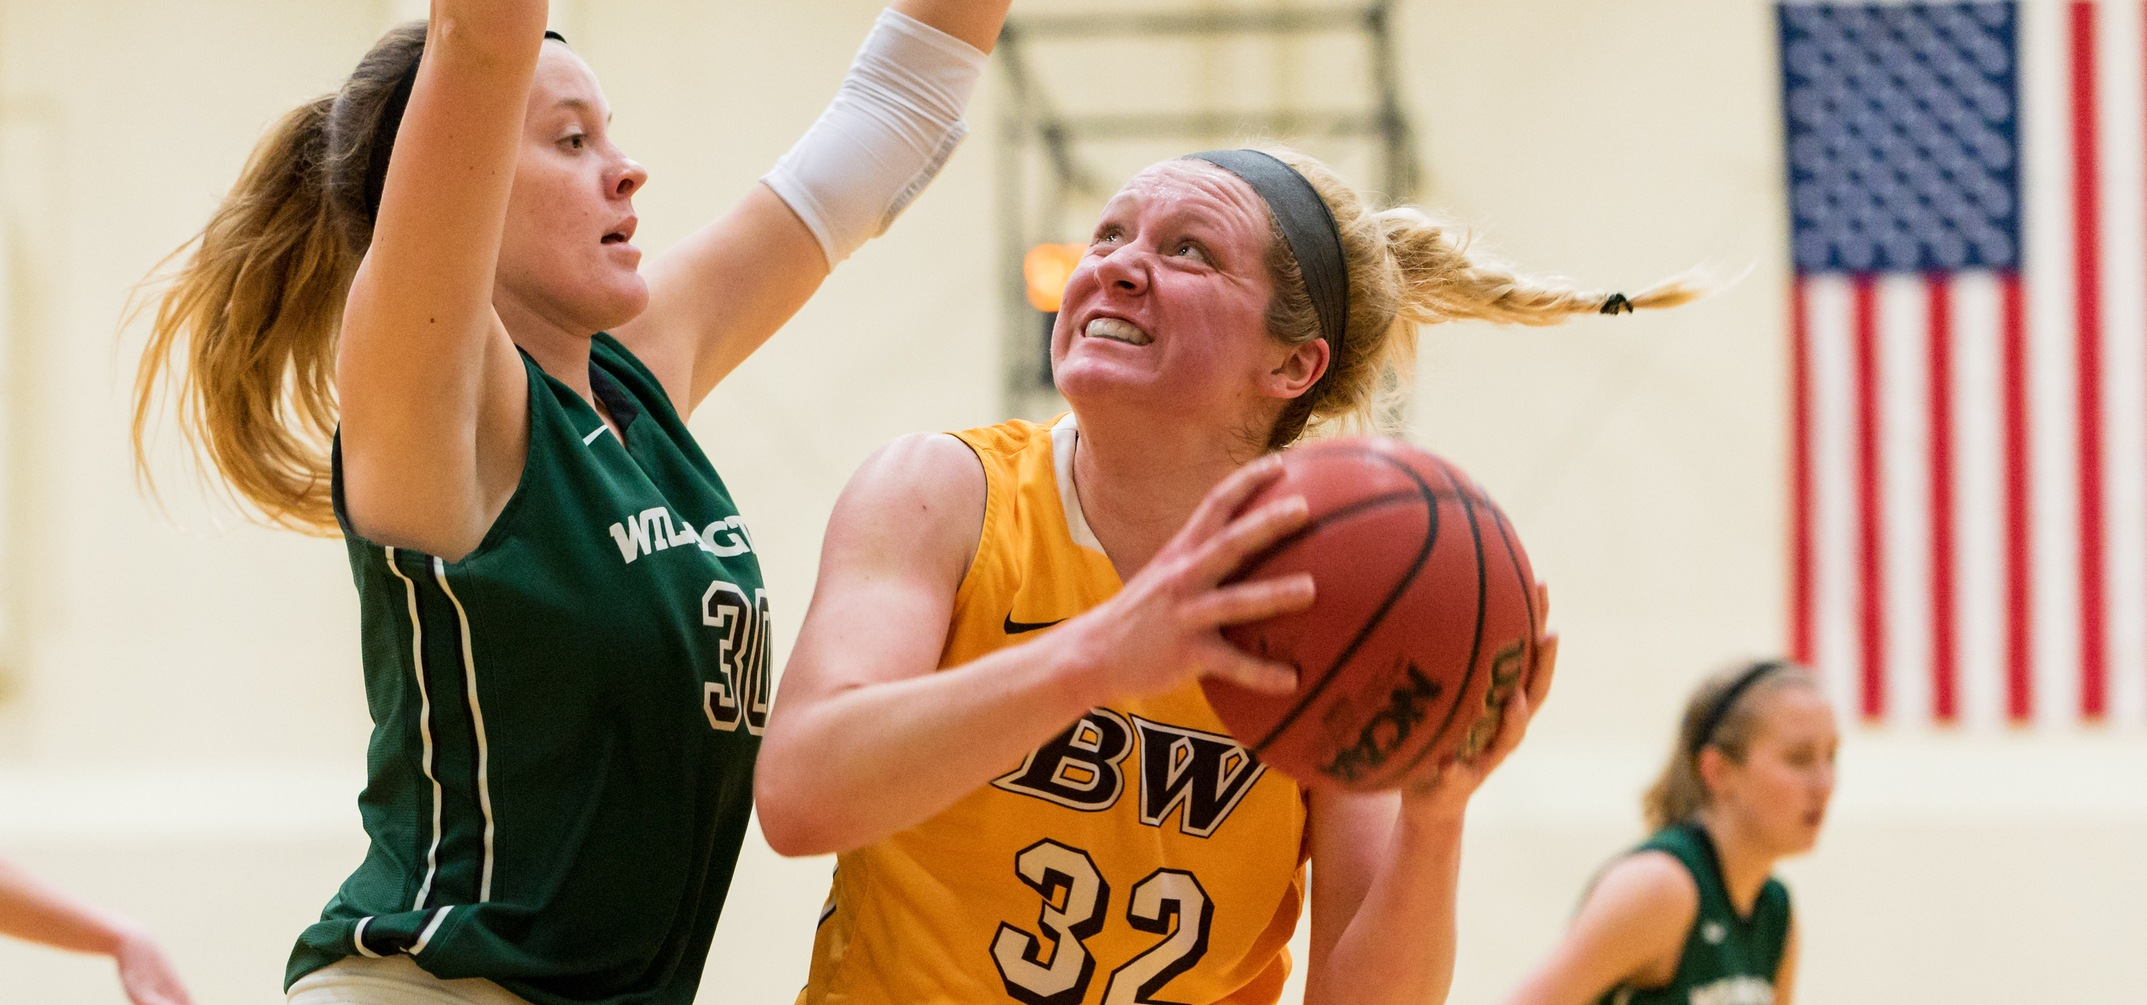 Freshman forward Lilly Edwards scored 20 points off the bench in BW's win over Wilmington (Photo courtesy of Jesse Kucewicz)